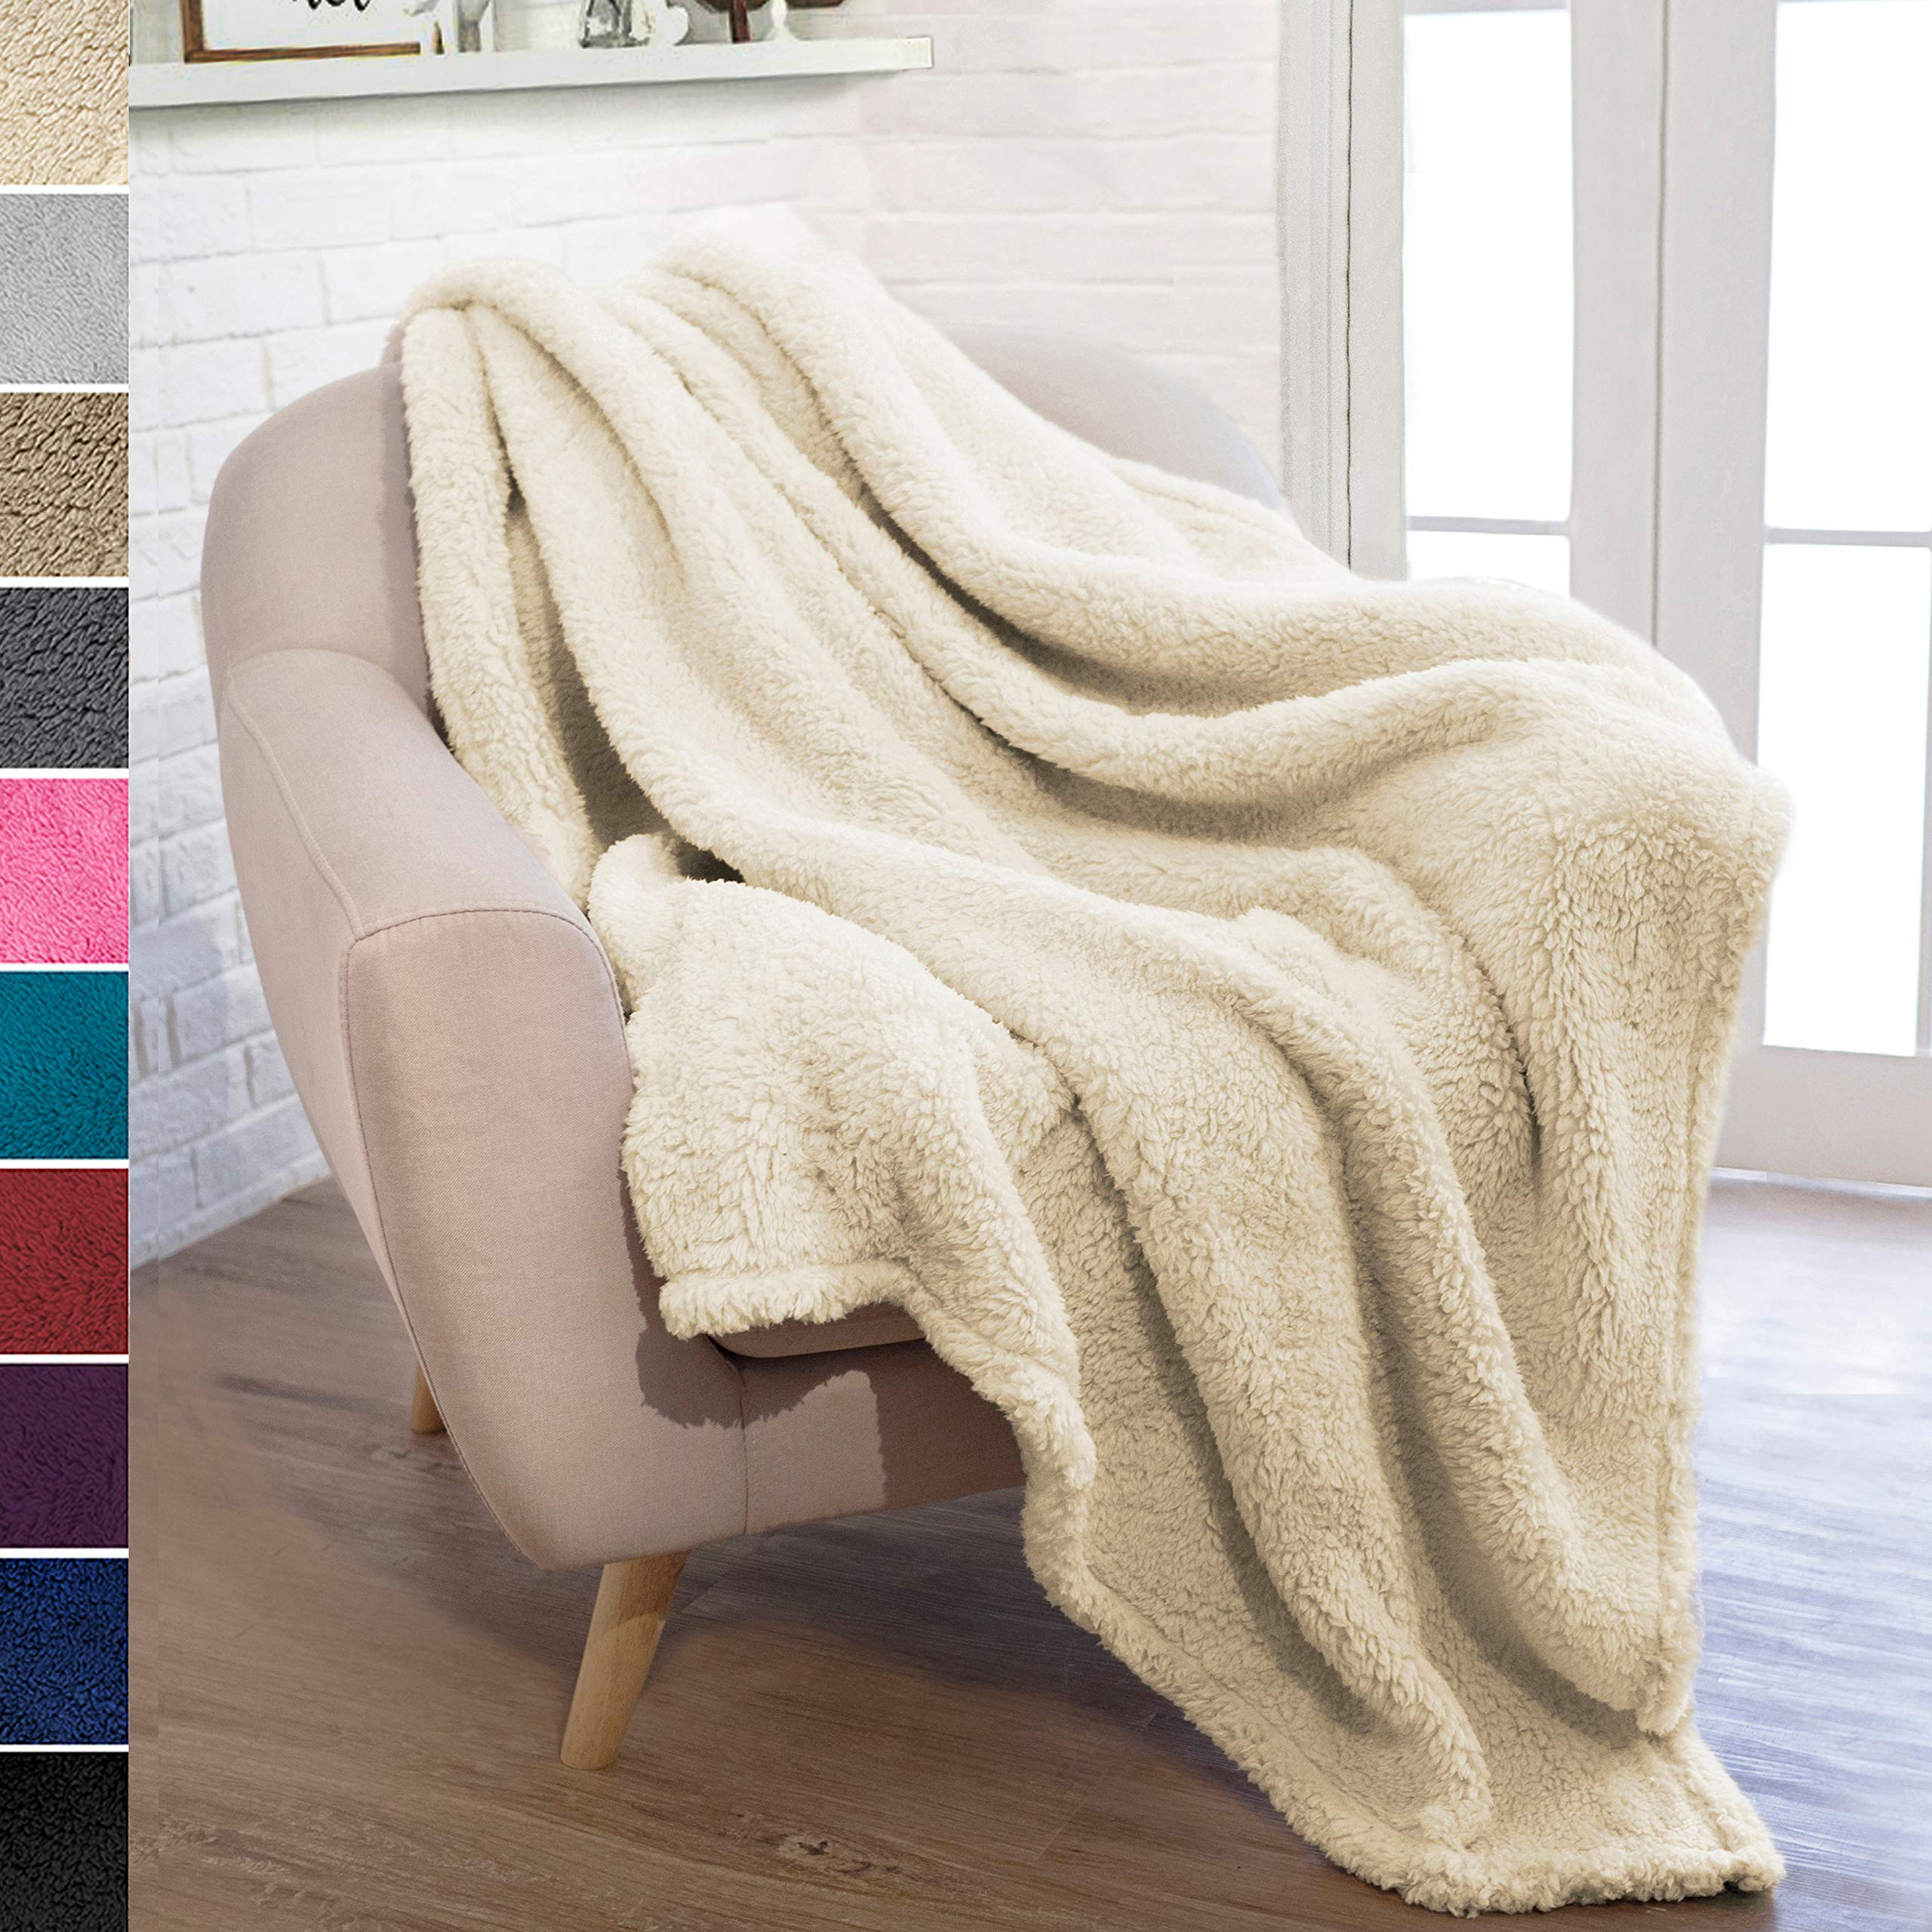 PAVILIA Plush Sherpa Throw Blanket for Couch Sofa | Fluffy Microfiber Fleece Throw | Soft, Fuzzy, Cozy, Lightweight | Solid Latte Cream Blanket | 50 x 60 Inches